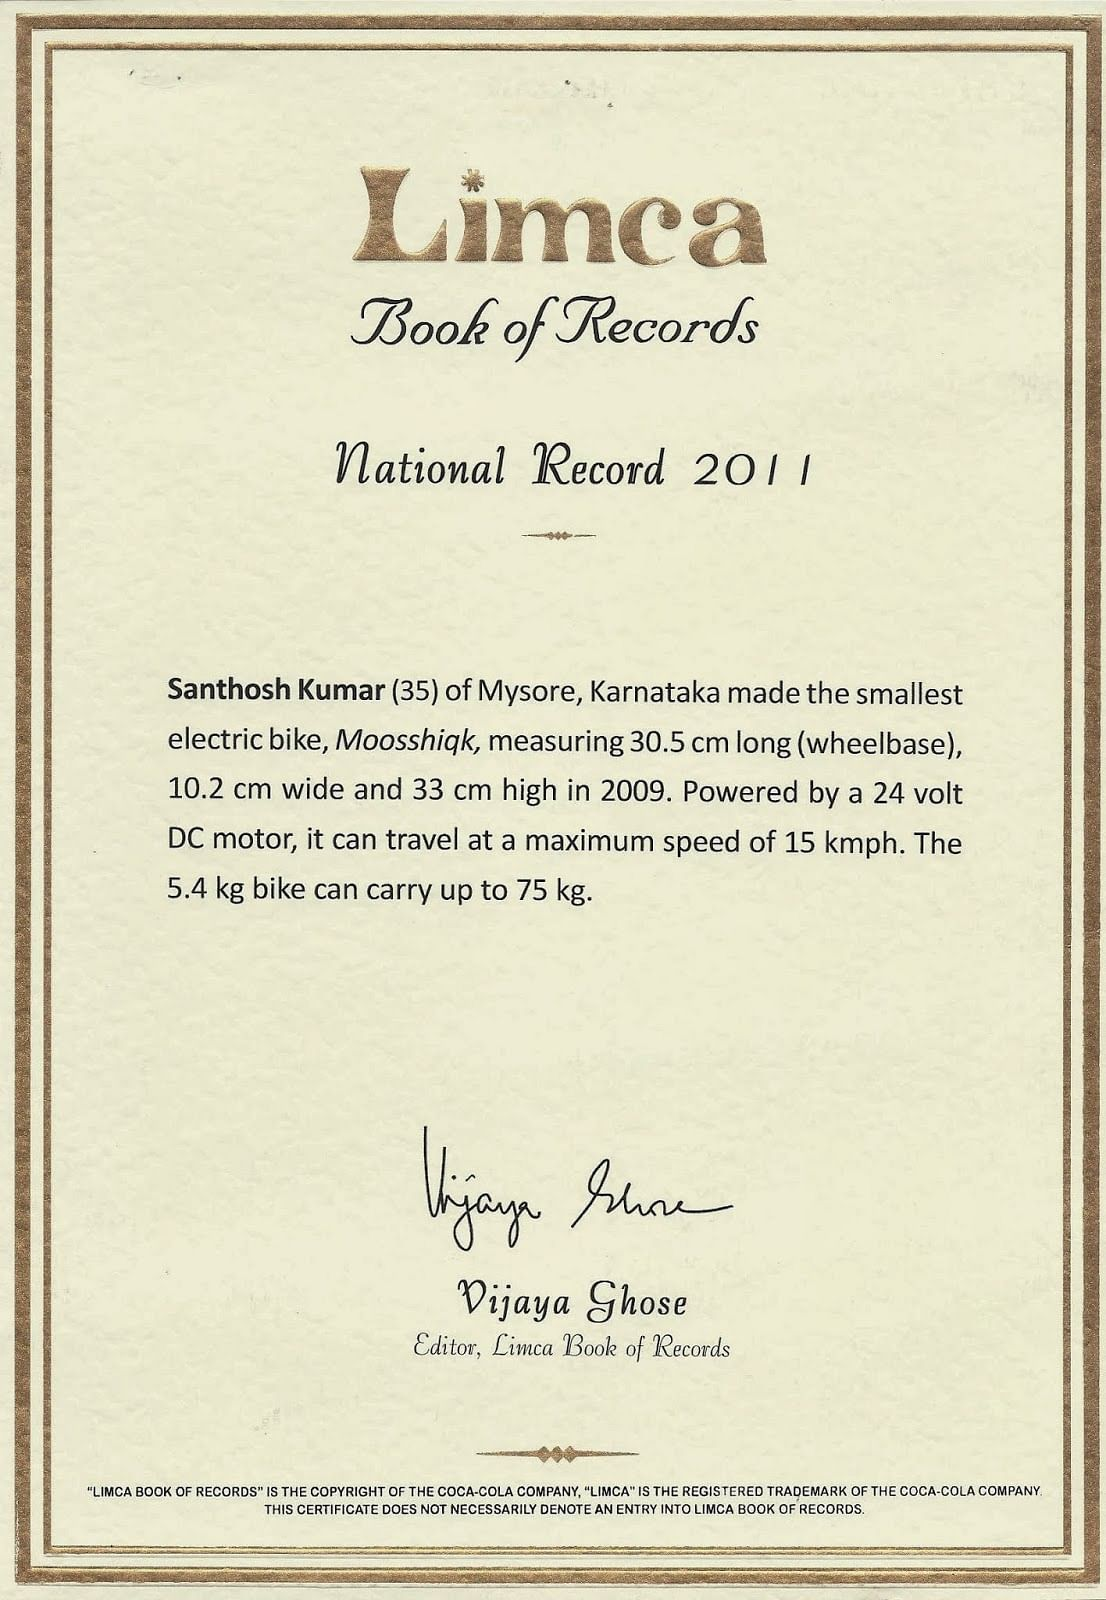 Santhosh has his name in Limca Book of Records for his small E-bike Moosshiqk.